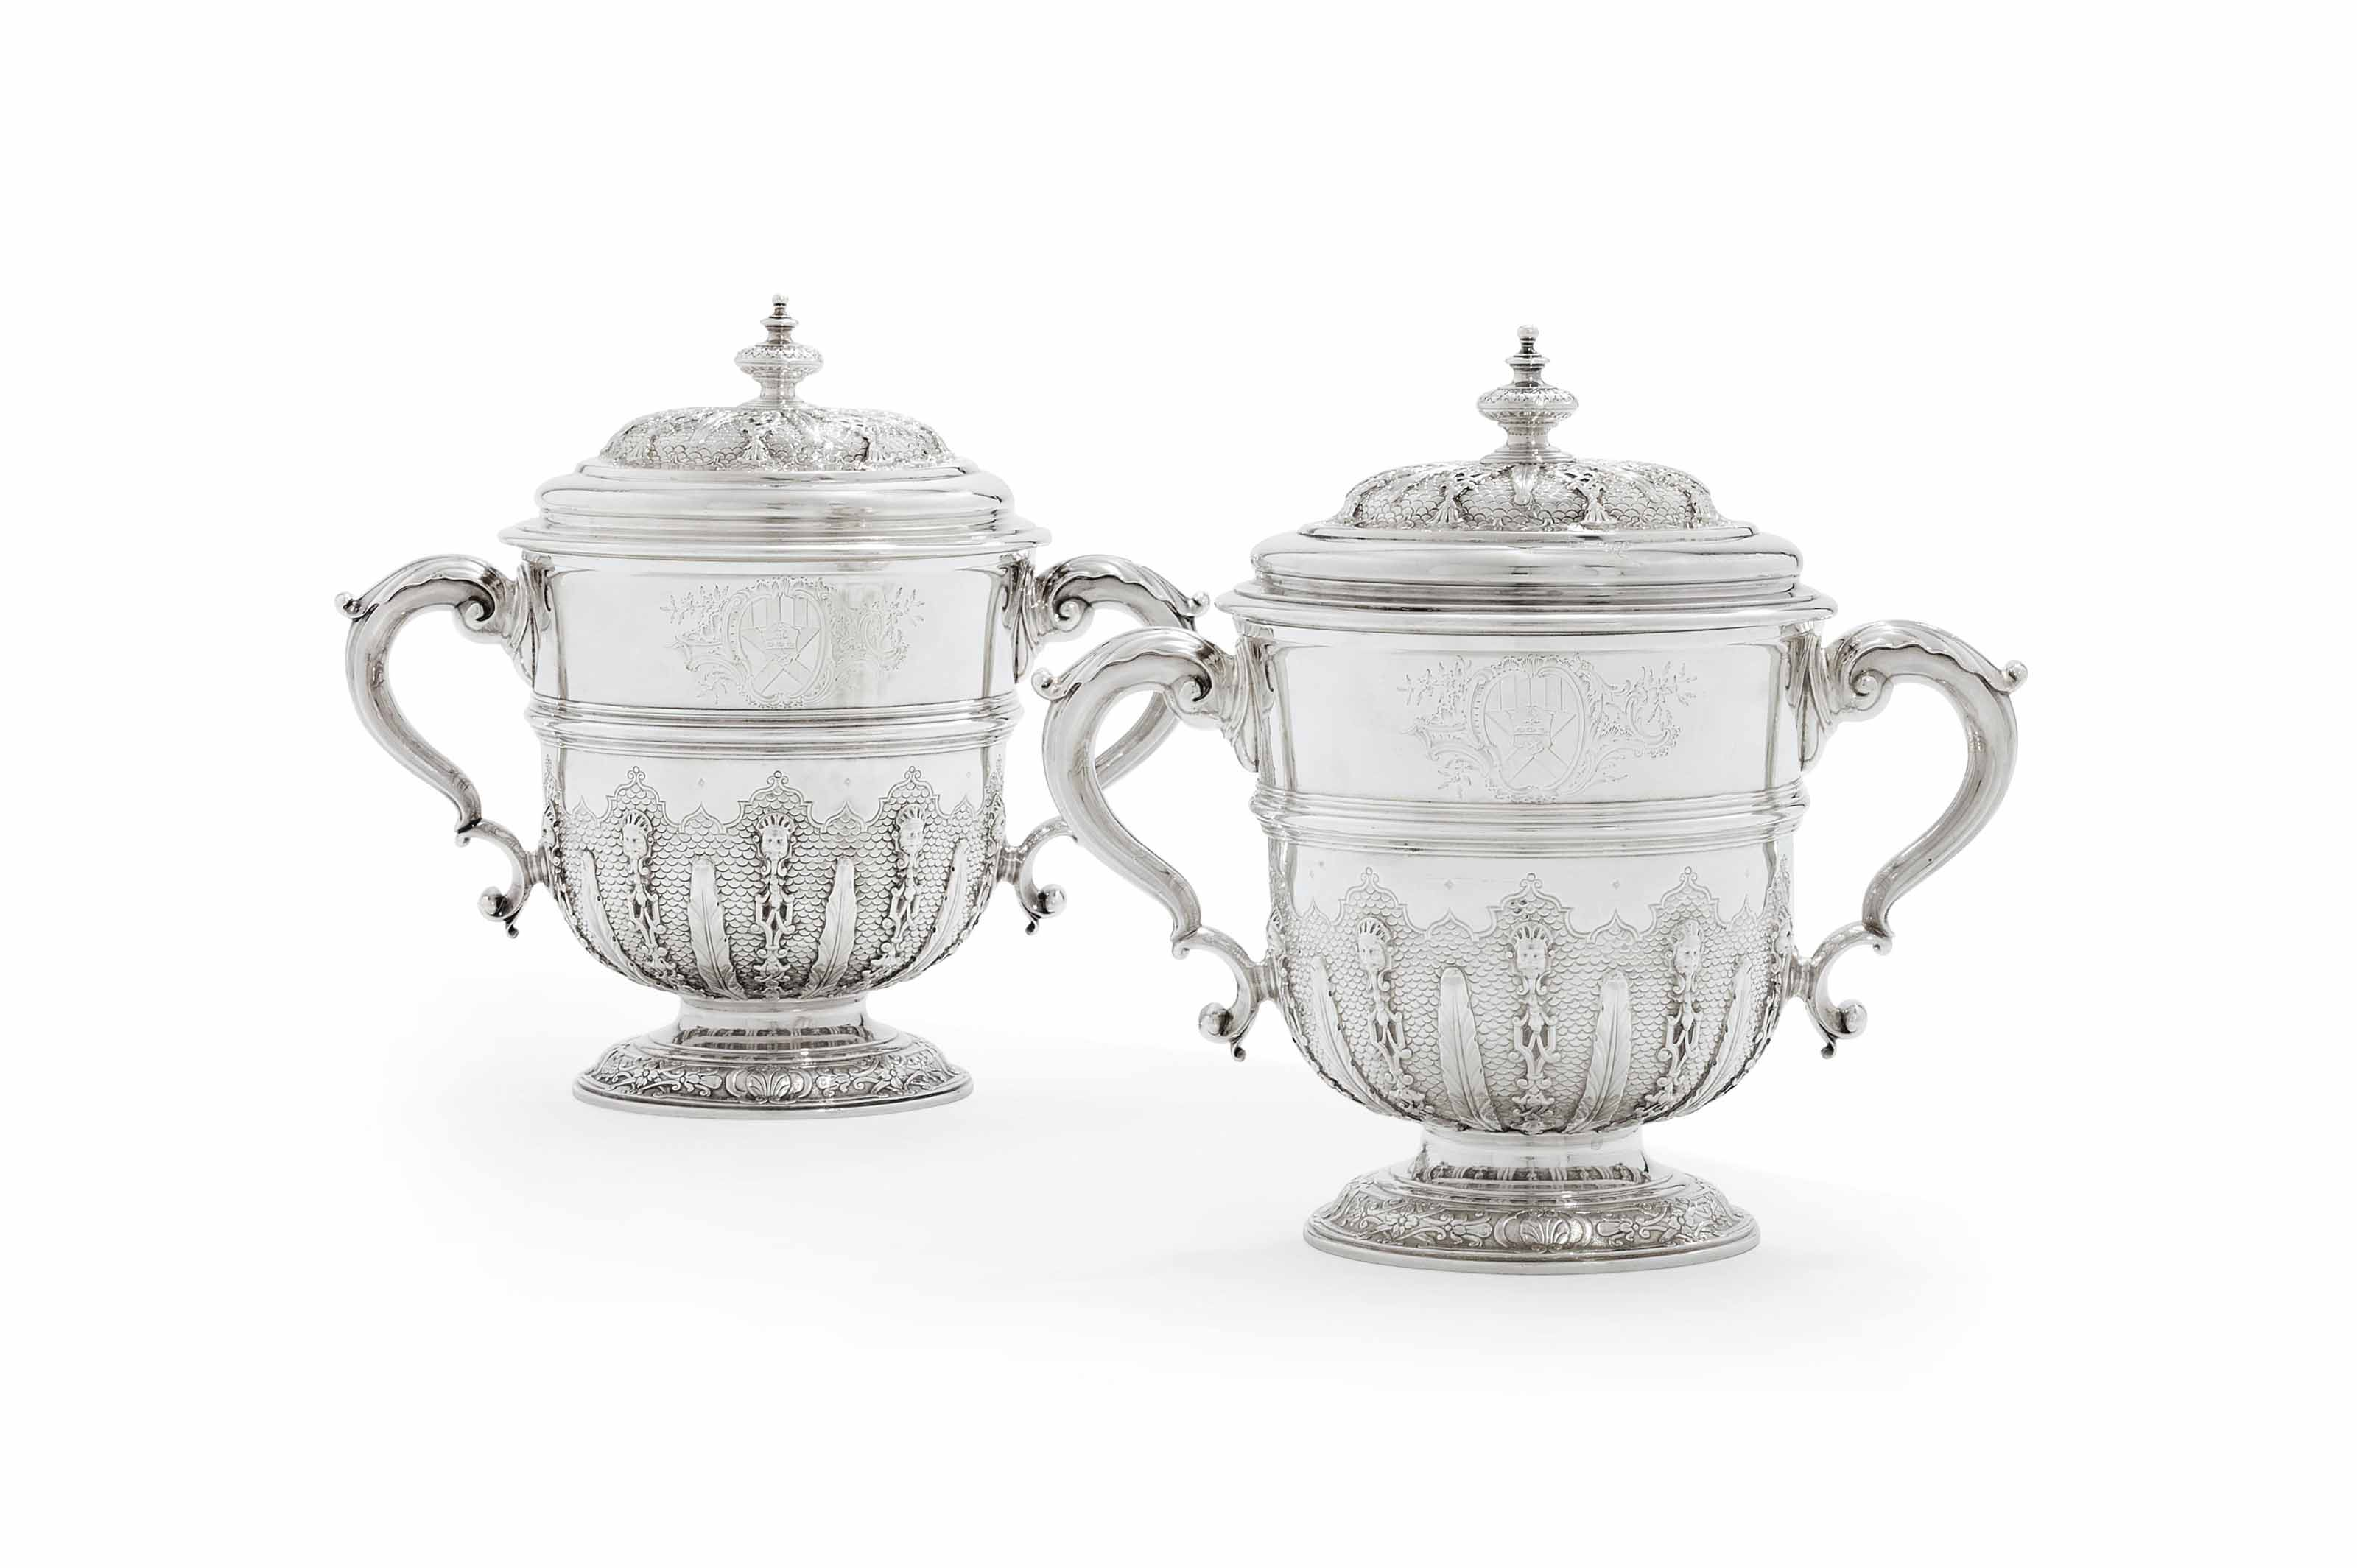 A PAIR OF GEORGE II SILVER CUPS AND COVERS